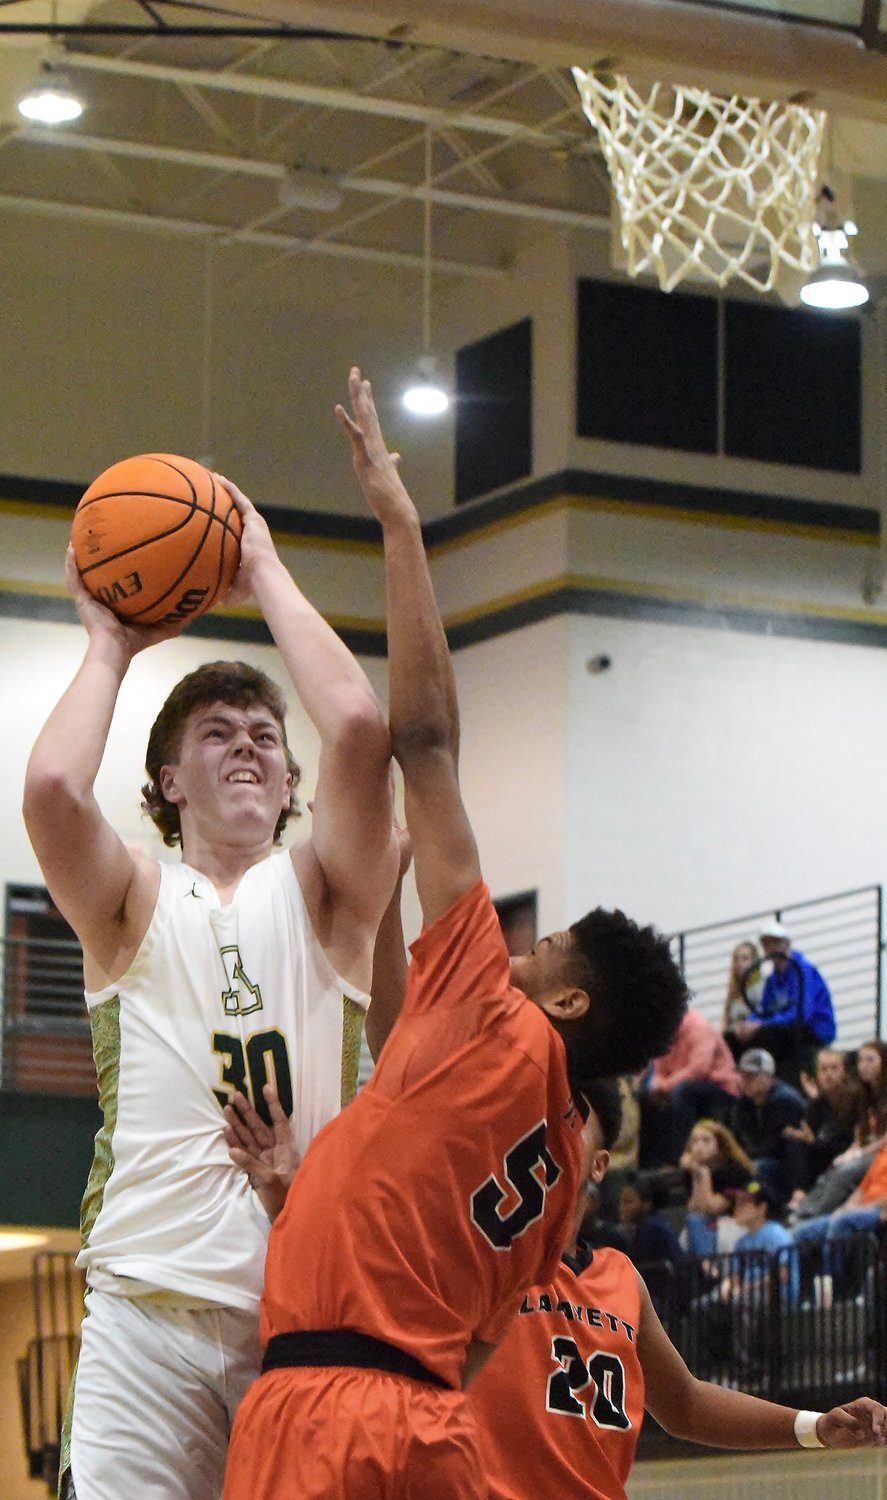 Adairsville High School Basketball Christmas Tournaments 2020 Adairsville falls to unbeaten LaFayette in tourney semis | The